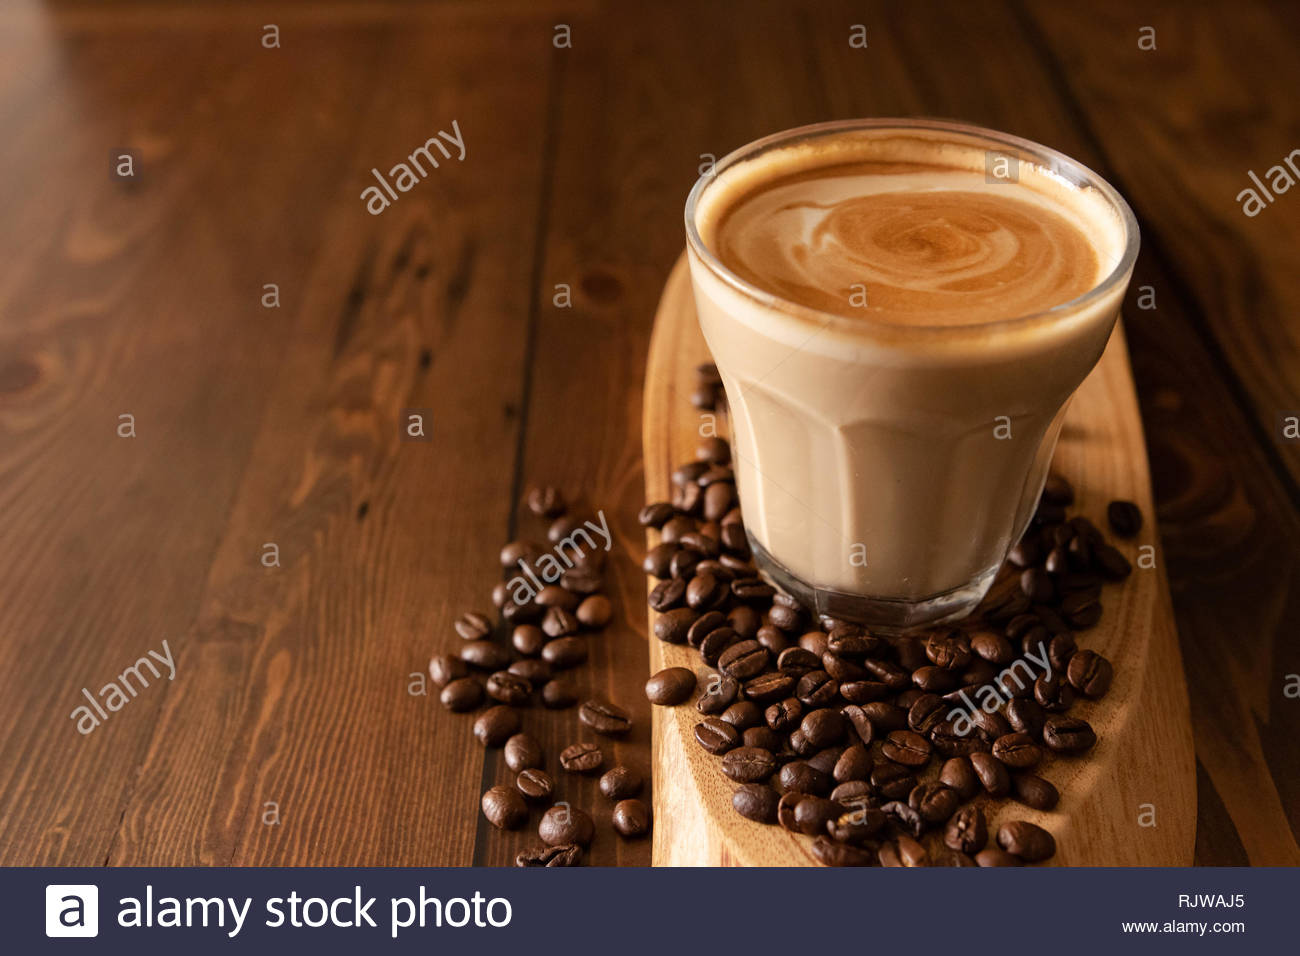 Coffee Latte Flat white in a glass with coffe beans spread out on a wooden table. Stock Photo